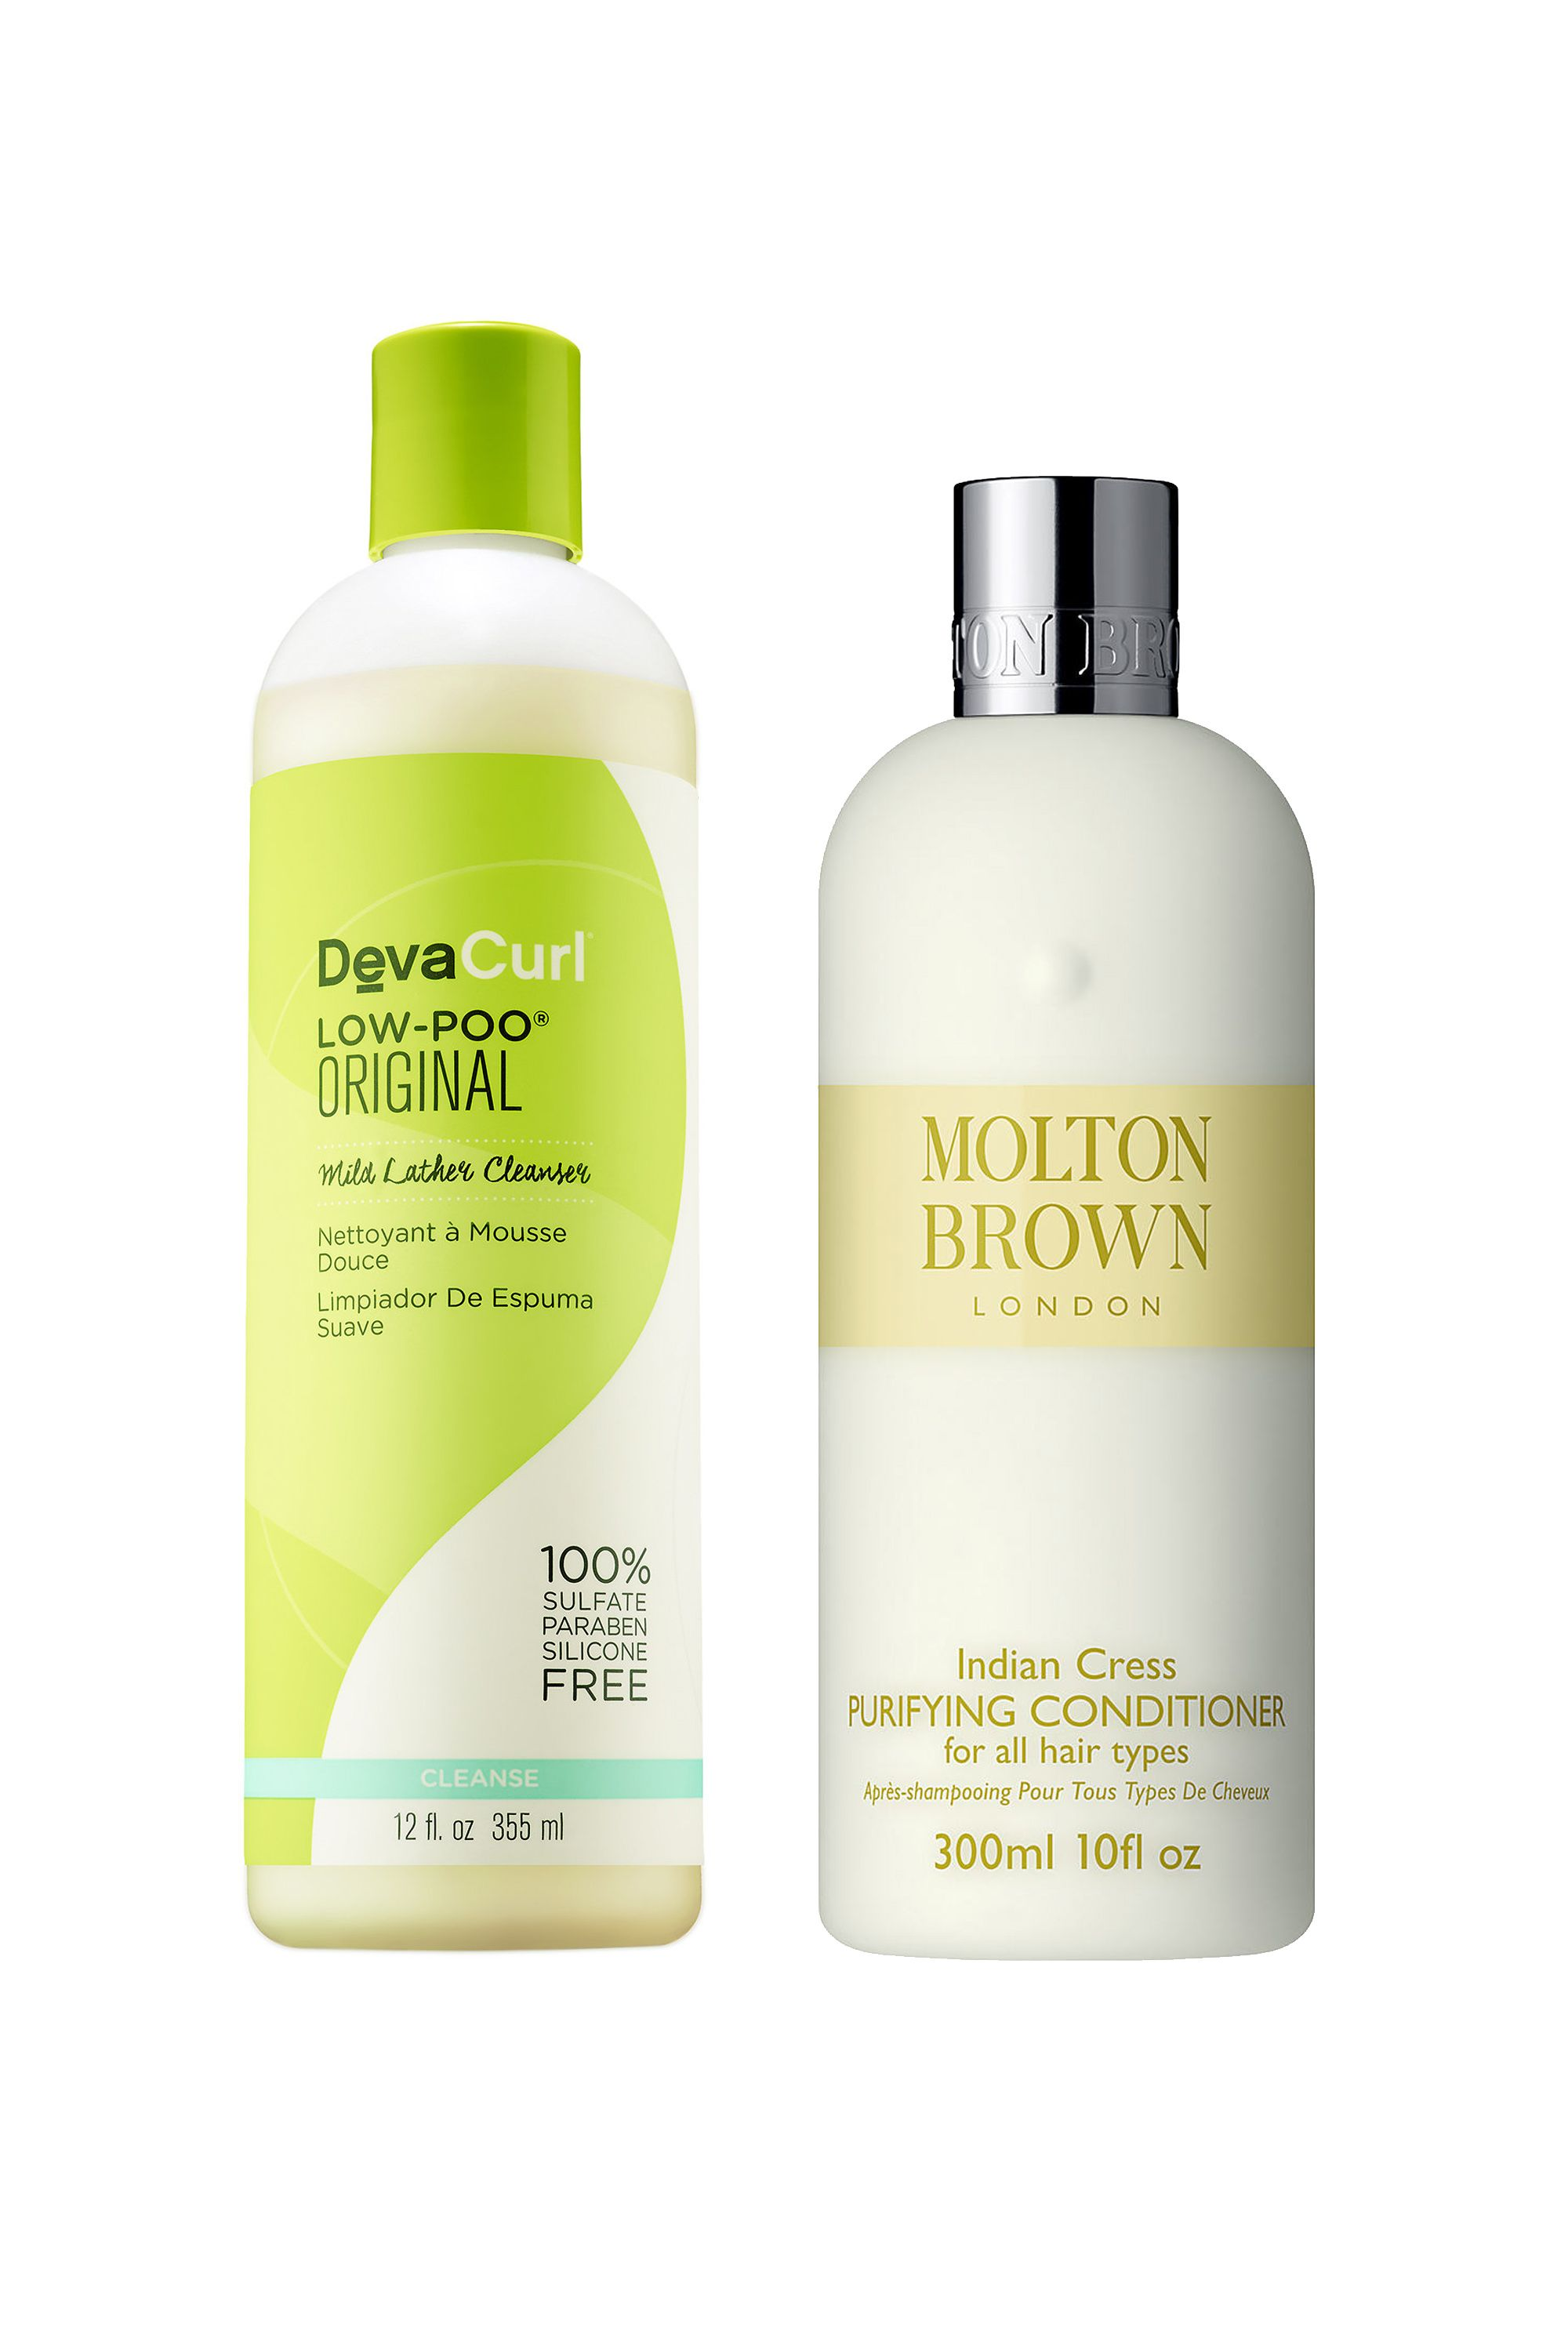 "<p>I tend to use a cocktail of products on my hair depending upon how it's acting and this has become my favorite combo! I took me a minute to get used to the low lather part of DevaCurl's Low-Poo, but it doesn't dry out my curls like most shampoos. The Molton Brown conditioner smells so good. Despite being lightweight, it really gets thru my toughest of tangles, which means a lot. I'm not sure of the magic ingredient but my hair always dries better when I use it.- Mariel Tyler, ELLE.com Photo Editor </p><p><em data-redactor-tag=""em"" data-verified=""redactor"">DevaCurl Low-Poo, $22; <a href=""http://www.sephora.com/low-poo-P378322?"" target=""_blank"">sephora.com</a></em></p><p><em data-redactor-tag=""em"" data-verified=""redactor""><a href=""http://www.devacurl.com/low-poo-curl.html?gclid=CPDVpLjxss8CFQERaQodydgJGw"" target=""_blank""></a></em><a href=""http://www.devacurl.com/low-poo-curl.html?gclid=CPDVpLjxss8CFQERaQodydgJGw"" target=""_blank""><em data-redactor-tag=""em"" data-verified=""redactor"">Molton Brown Indian Cress Purifying Conditioner, $30; </em>[link href=""http://shop.nordstrom.com/s/molton-brown-london-indian-cress-purifying-conditioner/3585127?cm_mmc=google-_-productads-_-Unisex%3AHairCare%3AConditioners-_-956053&rkg_id=h-744ff9d368aa0ca50c148b692bd68743_t-1475094067&adpos=1o2&creative=39388735913&device=c&network=g&gclid=CIShk8_xss8CFYRGXgodxJkCKw"" target=""_blank"" link_updater_label=""external""]<em data-redactor-tag=""em"" data-verified=""redactor"">nordstrom.com</em></a></p>"